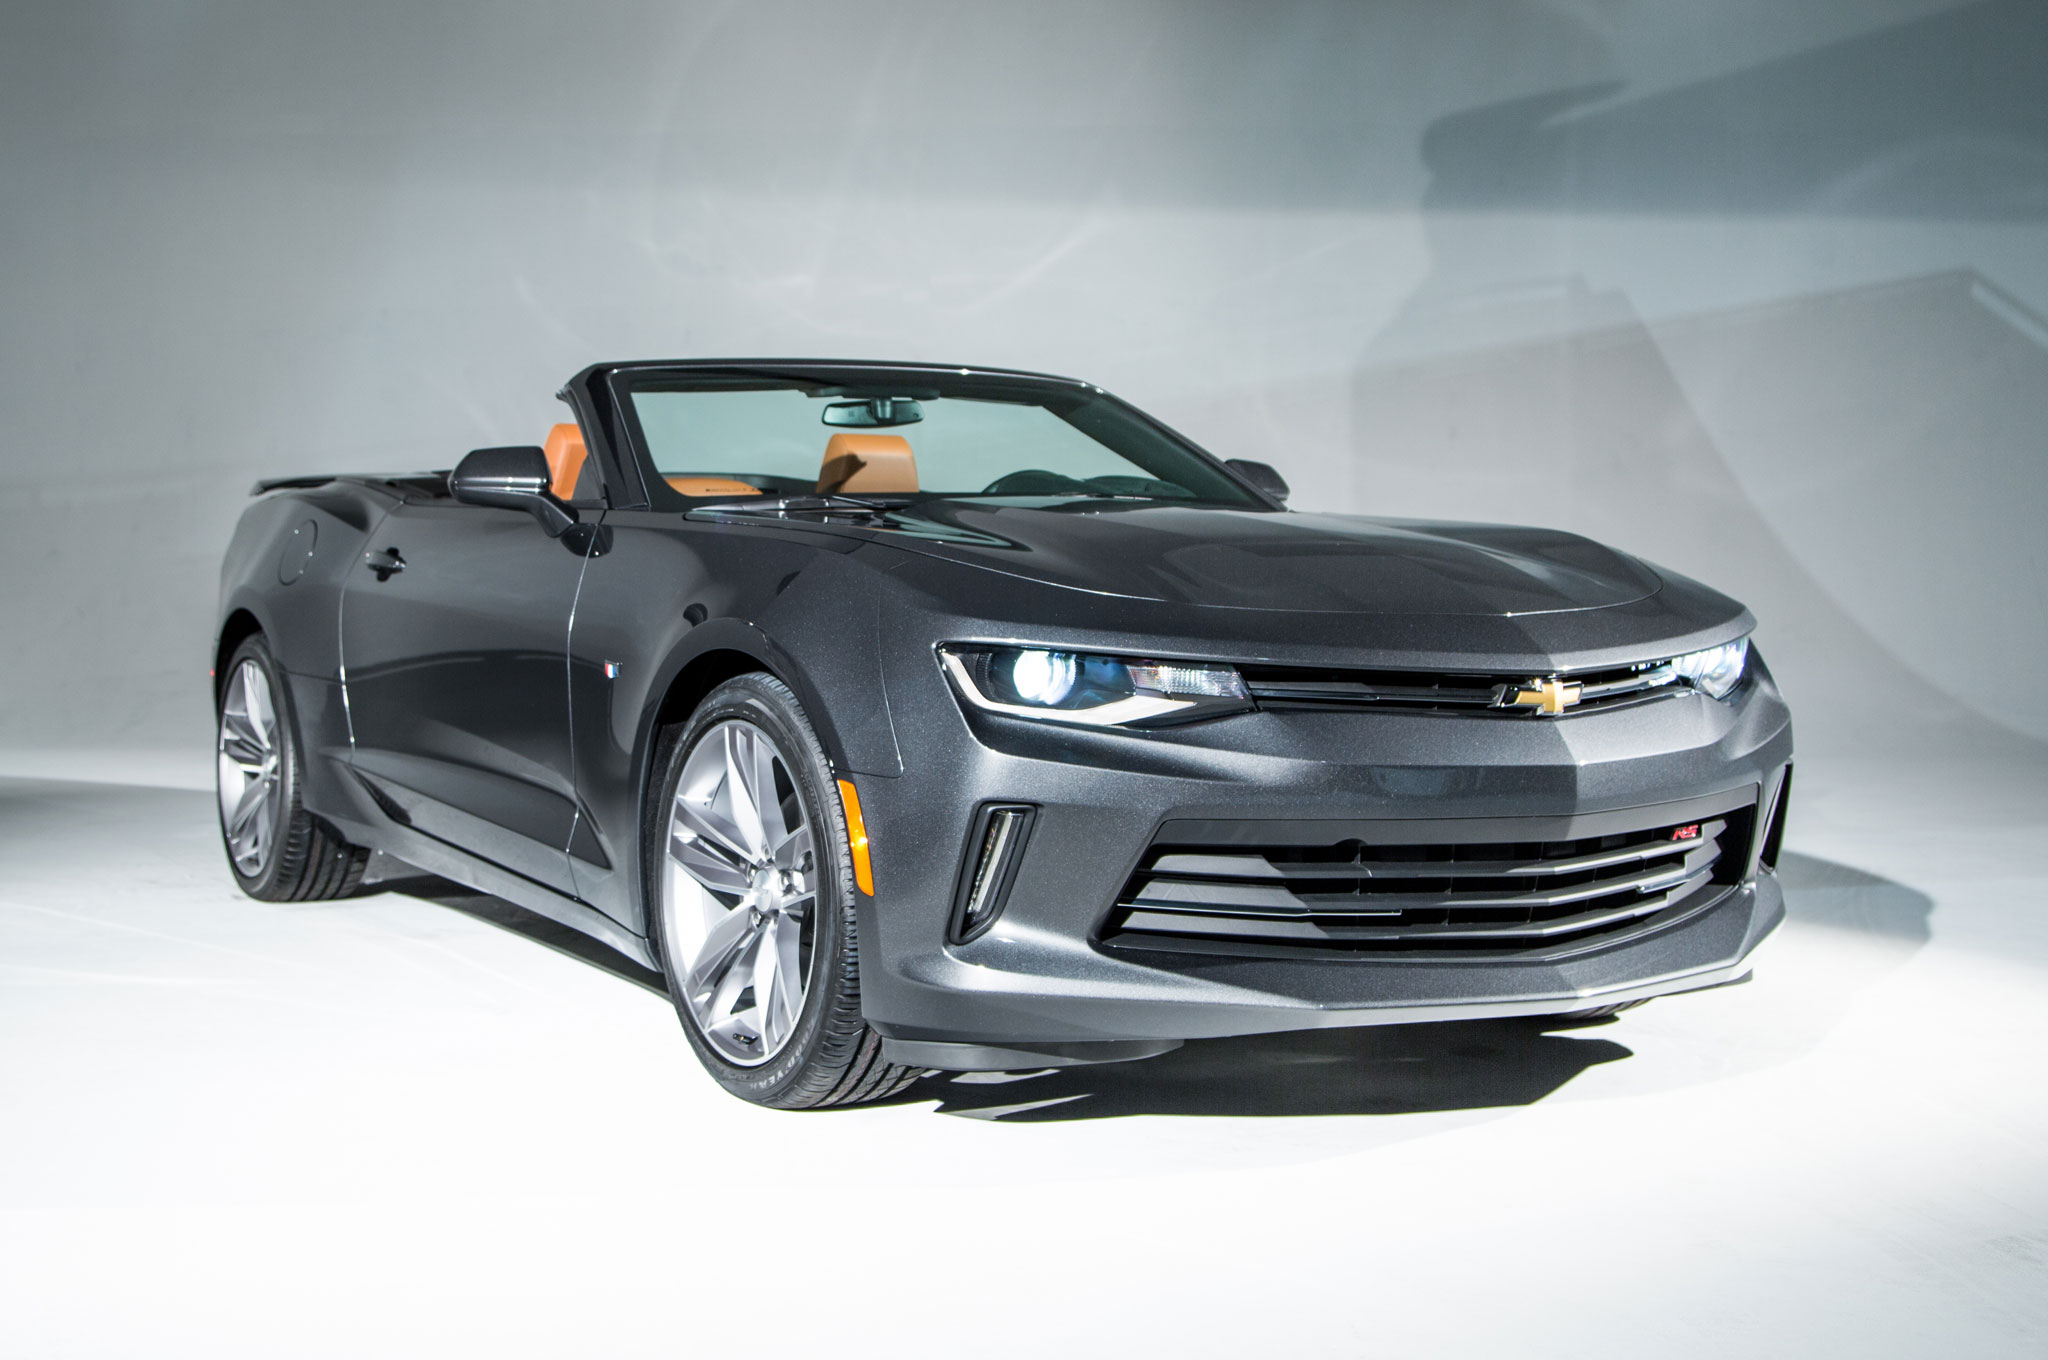 2016 Chevrolet Camaro Convertible Front Three Quarter 01